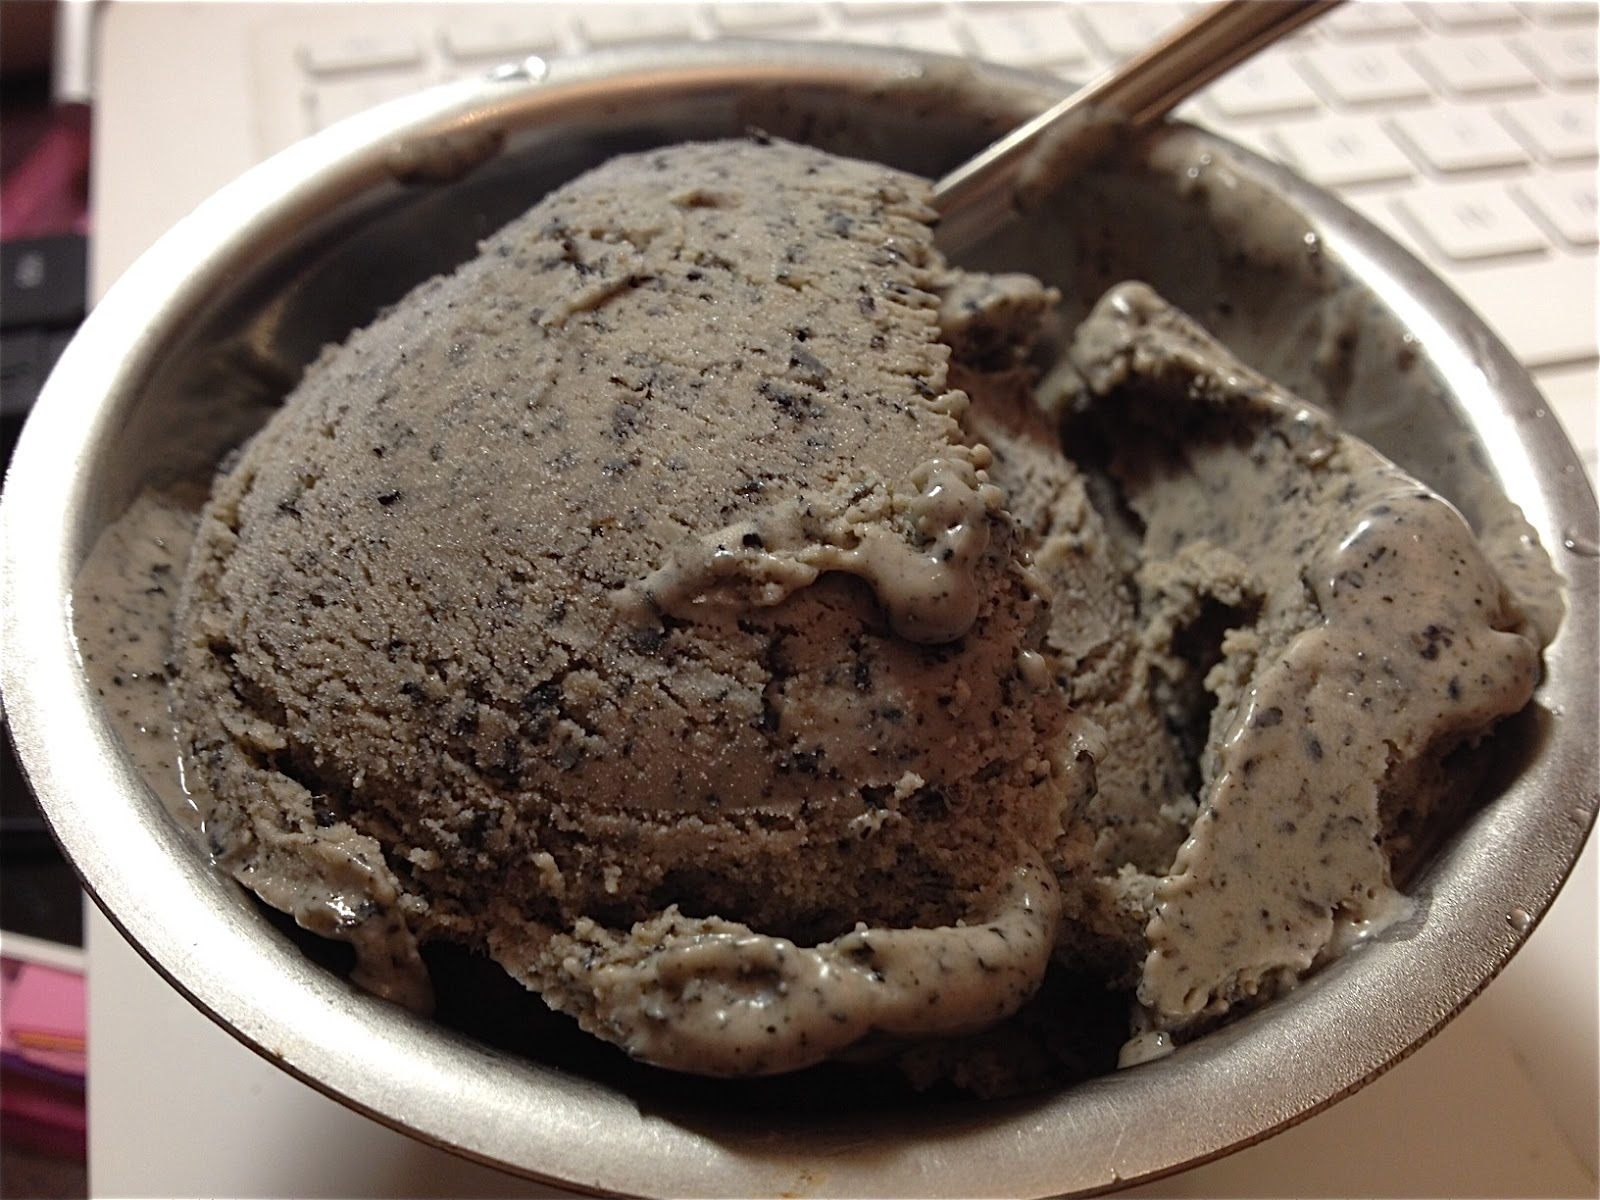 Black Sesame Ice Cream I made this black sesame ice